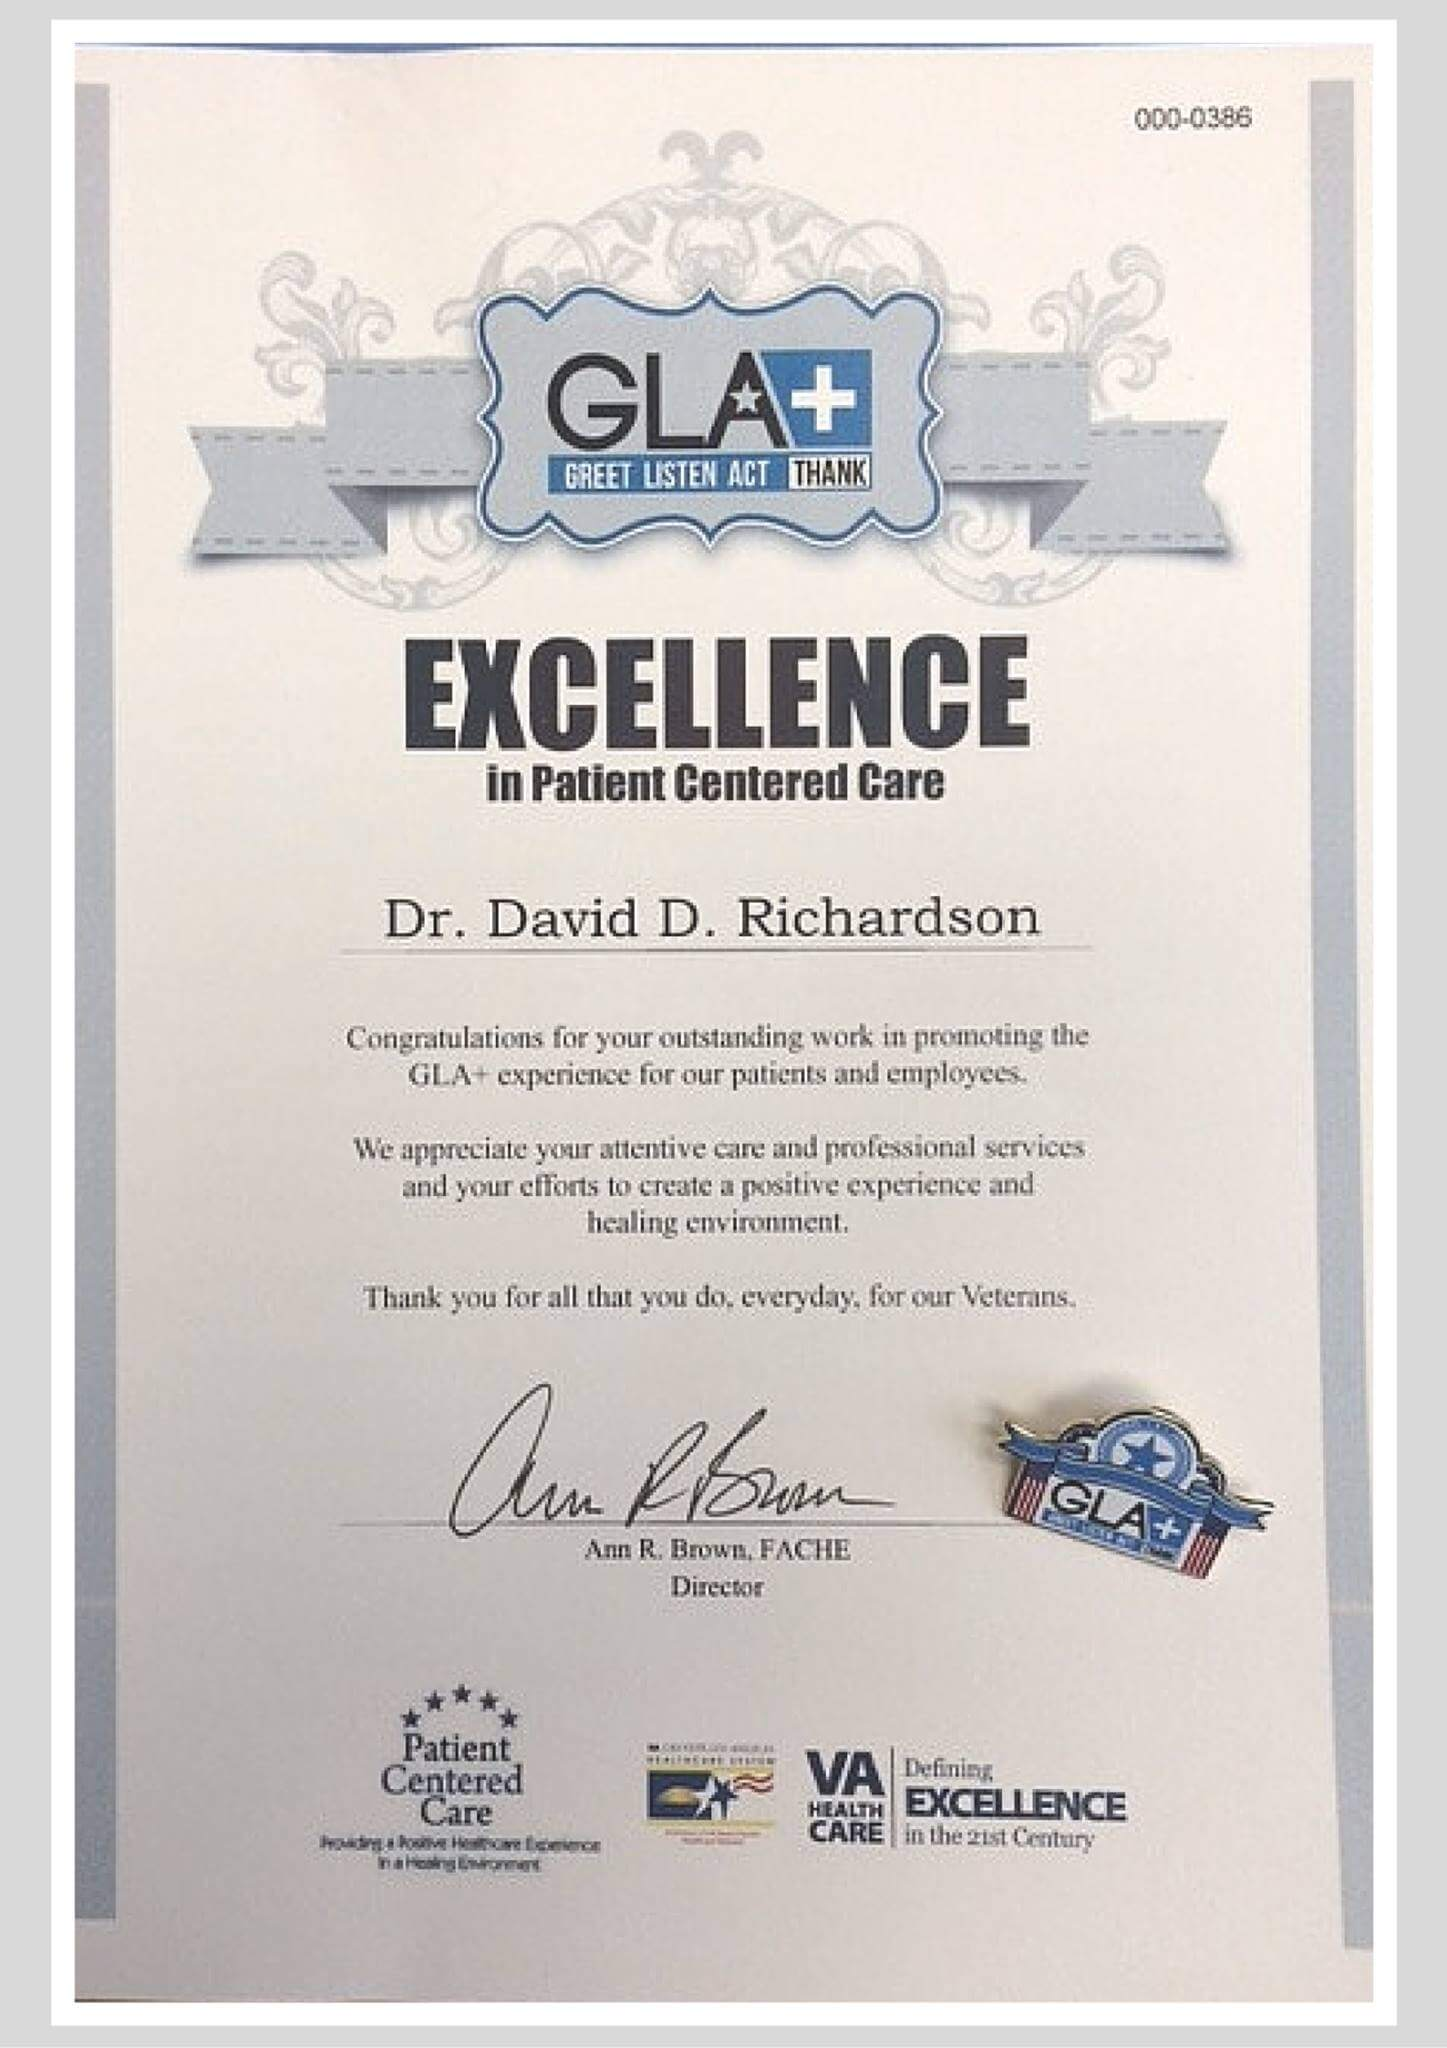 EXCELLENCE in Patient Centered Care